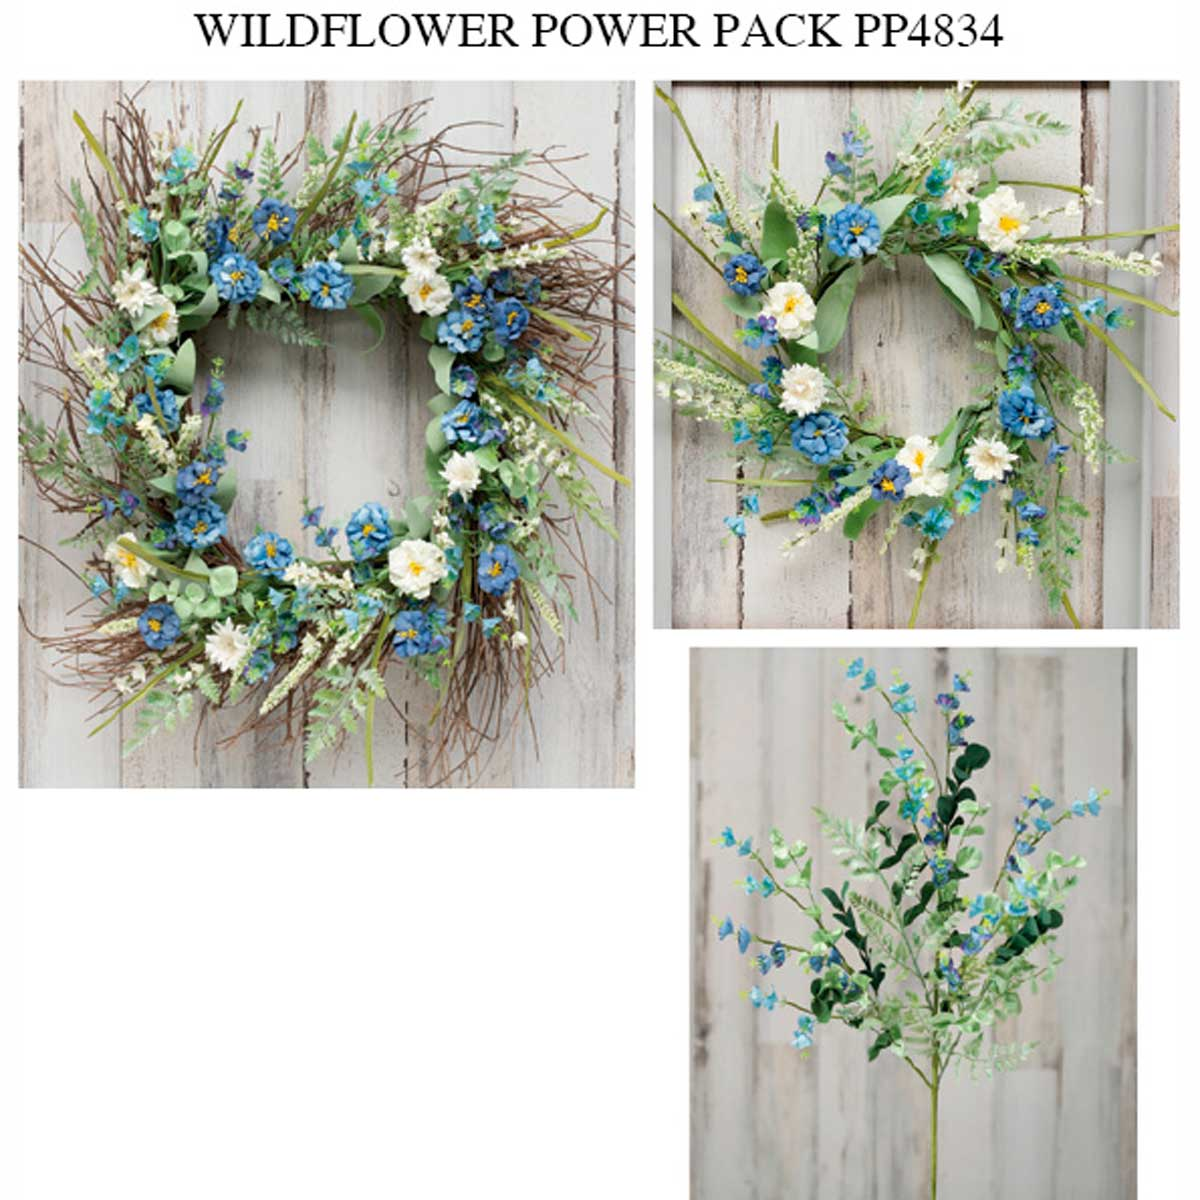 BLUE BAYOU WILDFLOWER AND FOLIAGE POWER PACK 9 UNITS